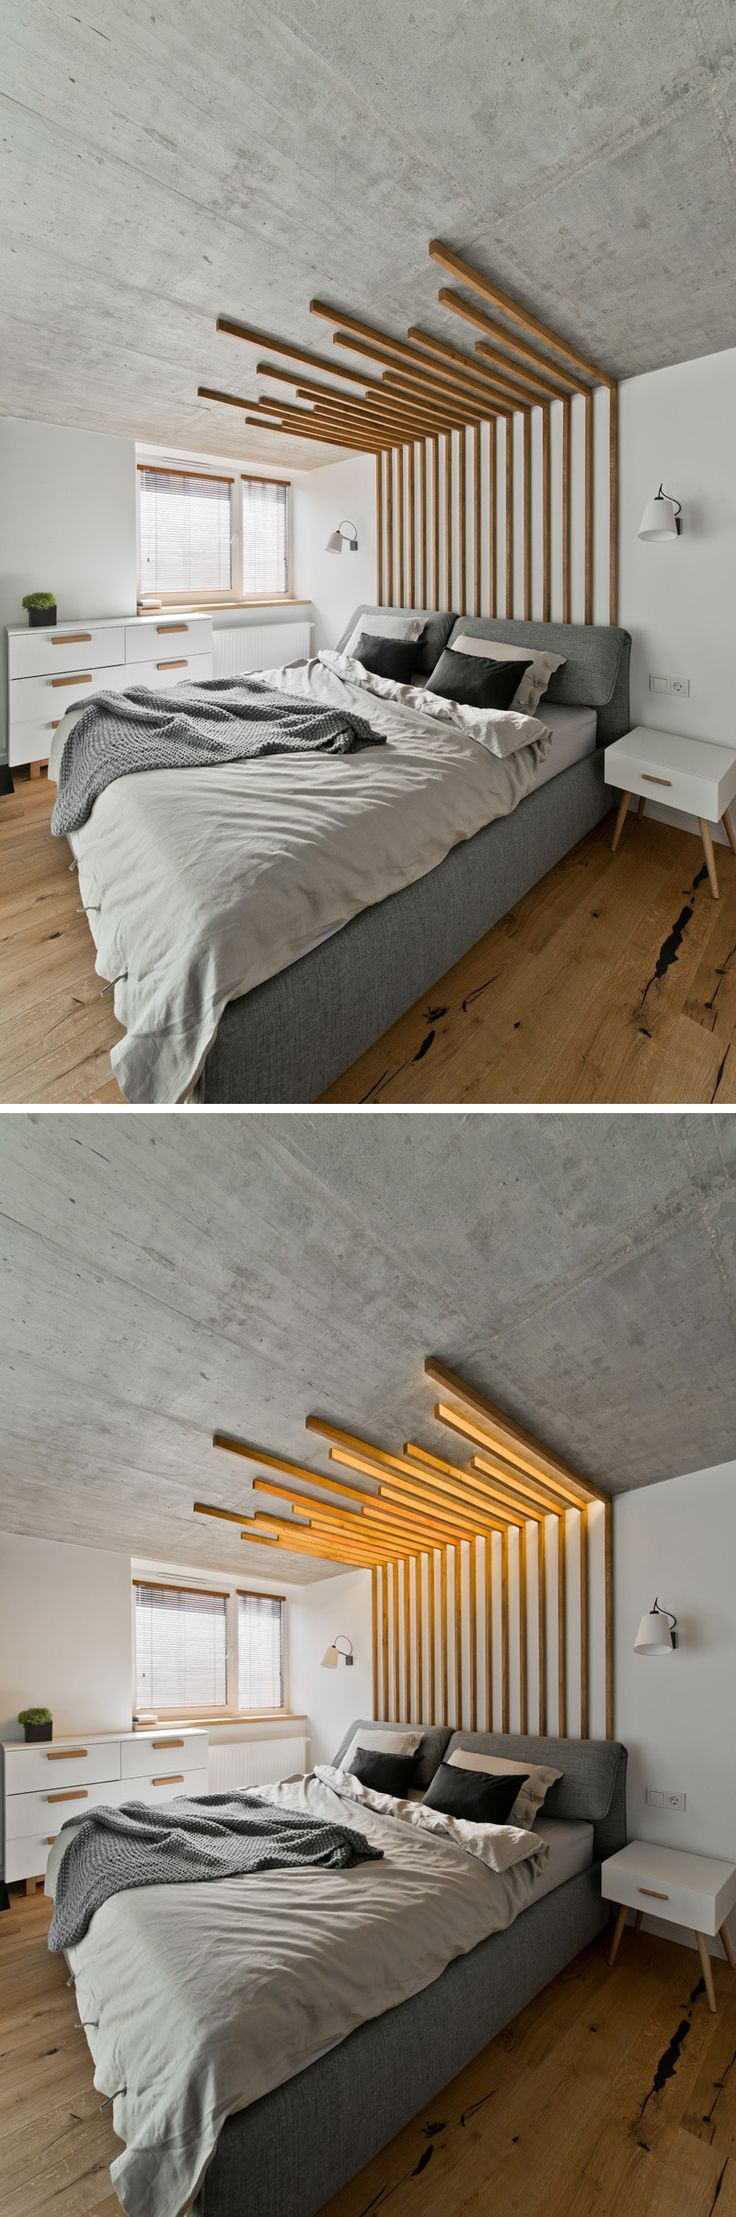 Interior architect, Indre Sunklodiene of InArch, has designed this decorative wood feature piece above the bed, in a loft in Vilnius, Lithuania. It not only creates a focal point within the bedroom, but is also functional, as it includes lighting.